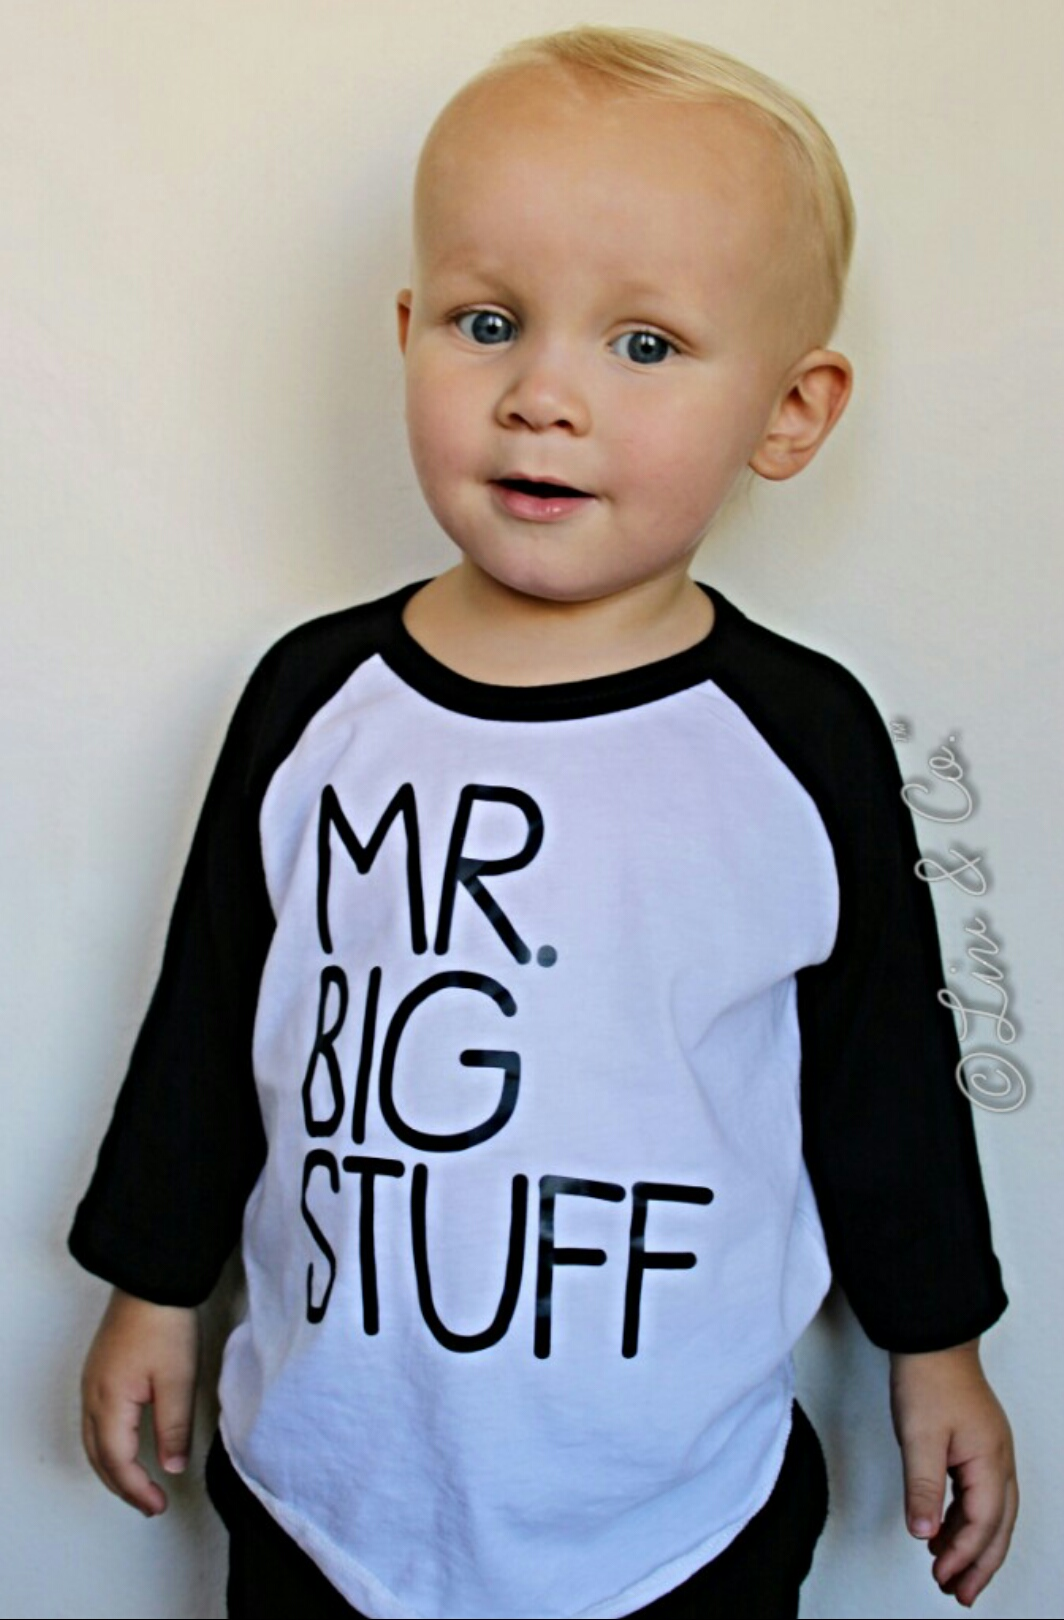 Mr Big Stuff Baby And Toddler Boy Tshirt Clothes